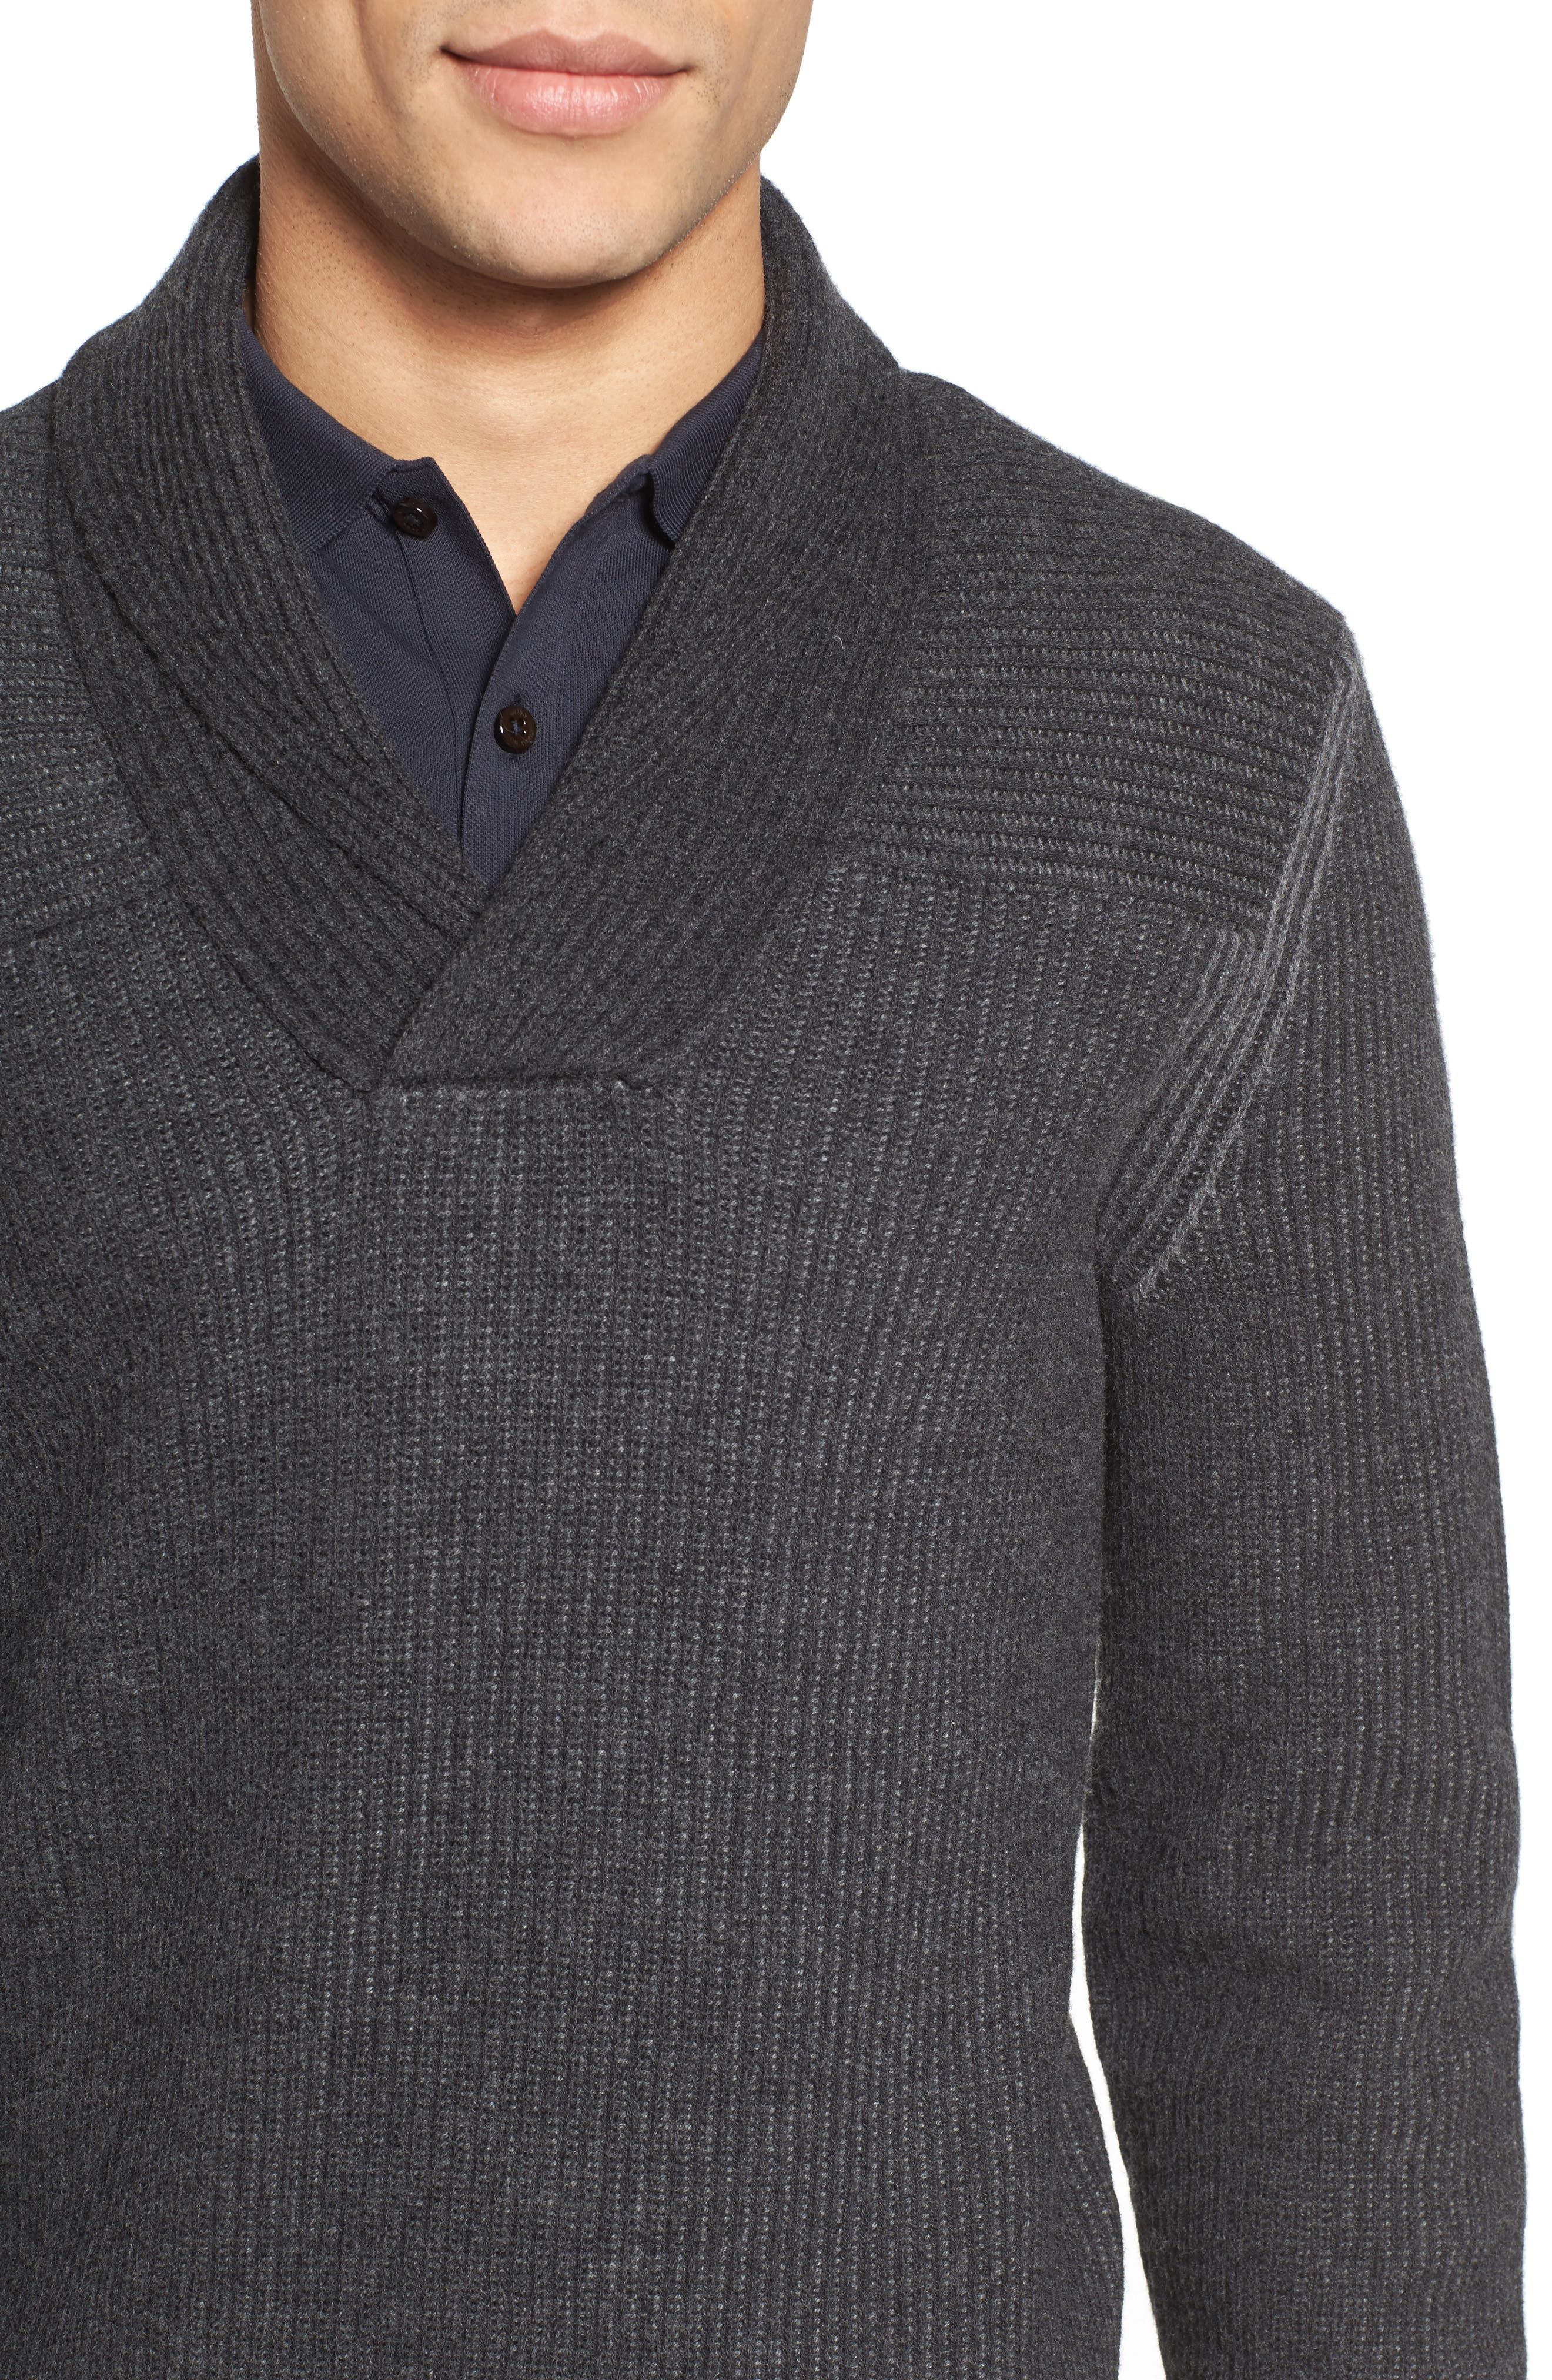 'Berno' Shawl Collar Wool Pullover,                             Alternate thumbnail 4, color,                             010